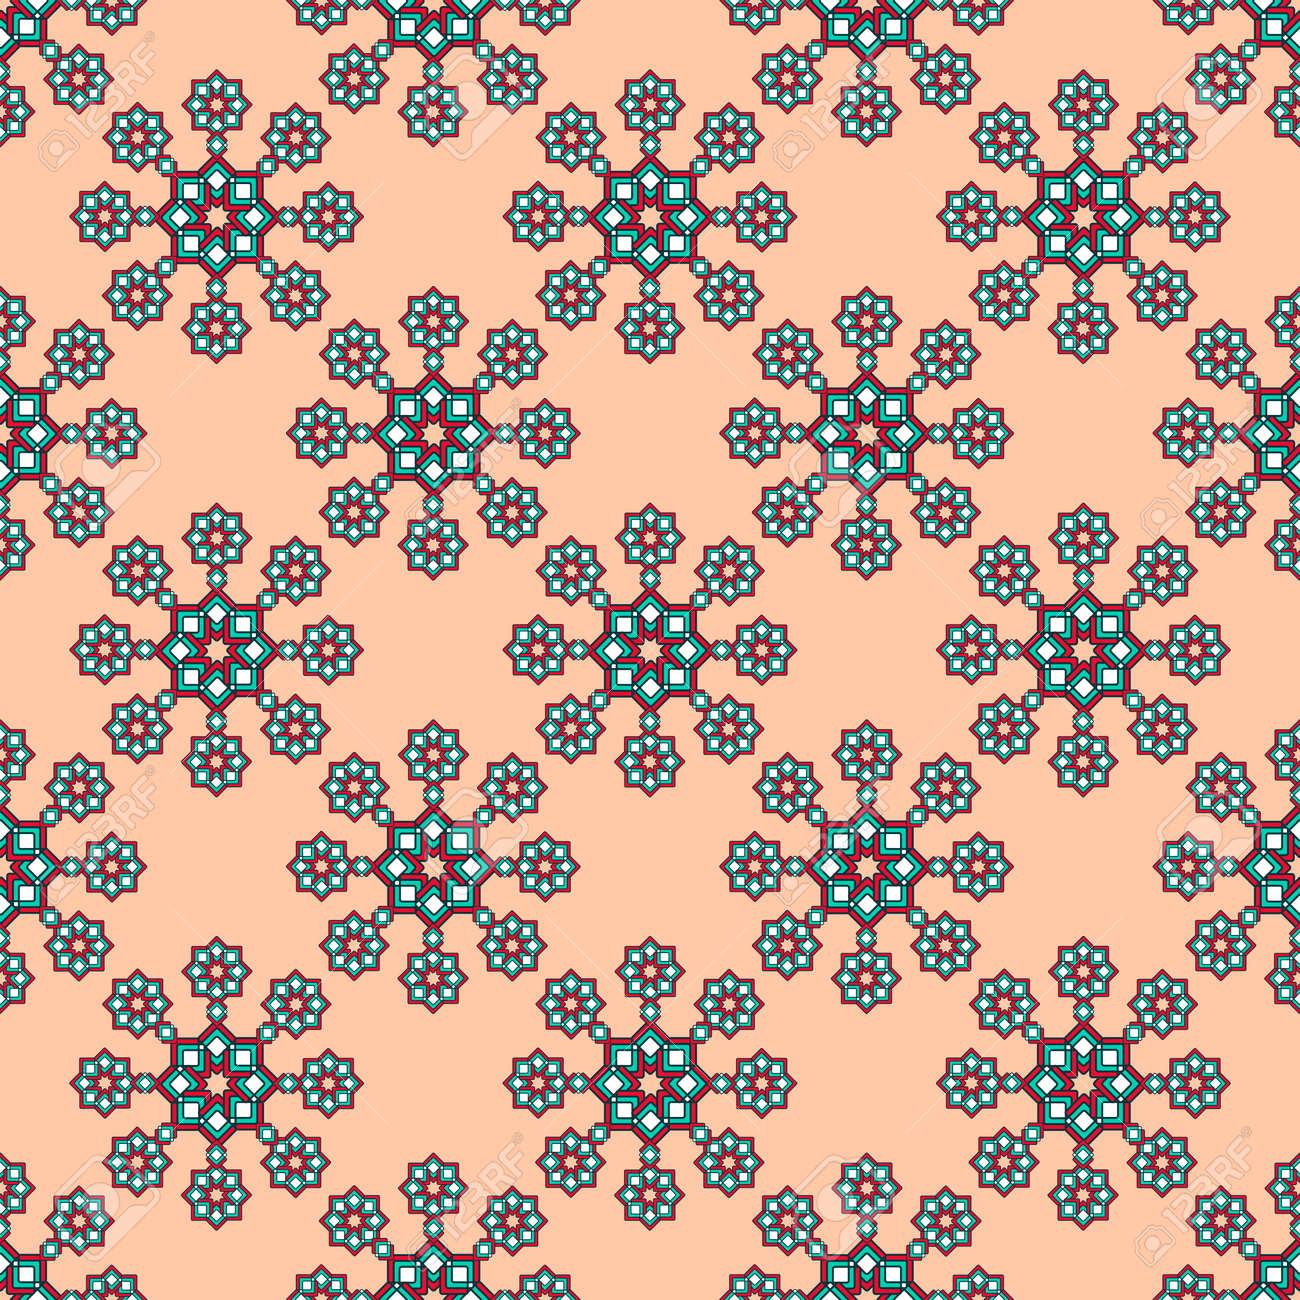 Seamless geometric print, bright curly stars in turquoise and red with white tones, apricot background. Great for decorating fabrics, textiles, gift wrapping, printed matter, interiors, advertising. - 163058453